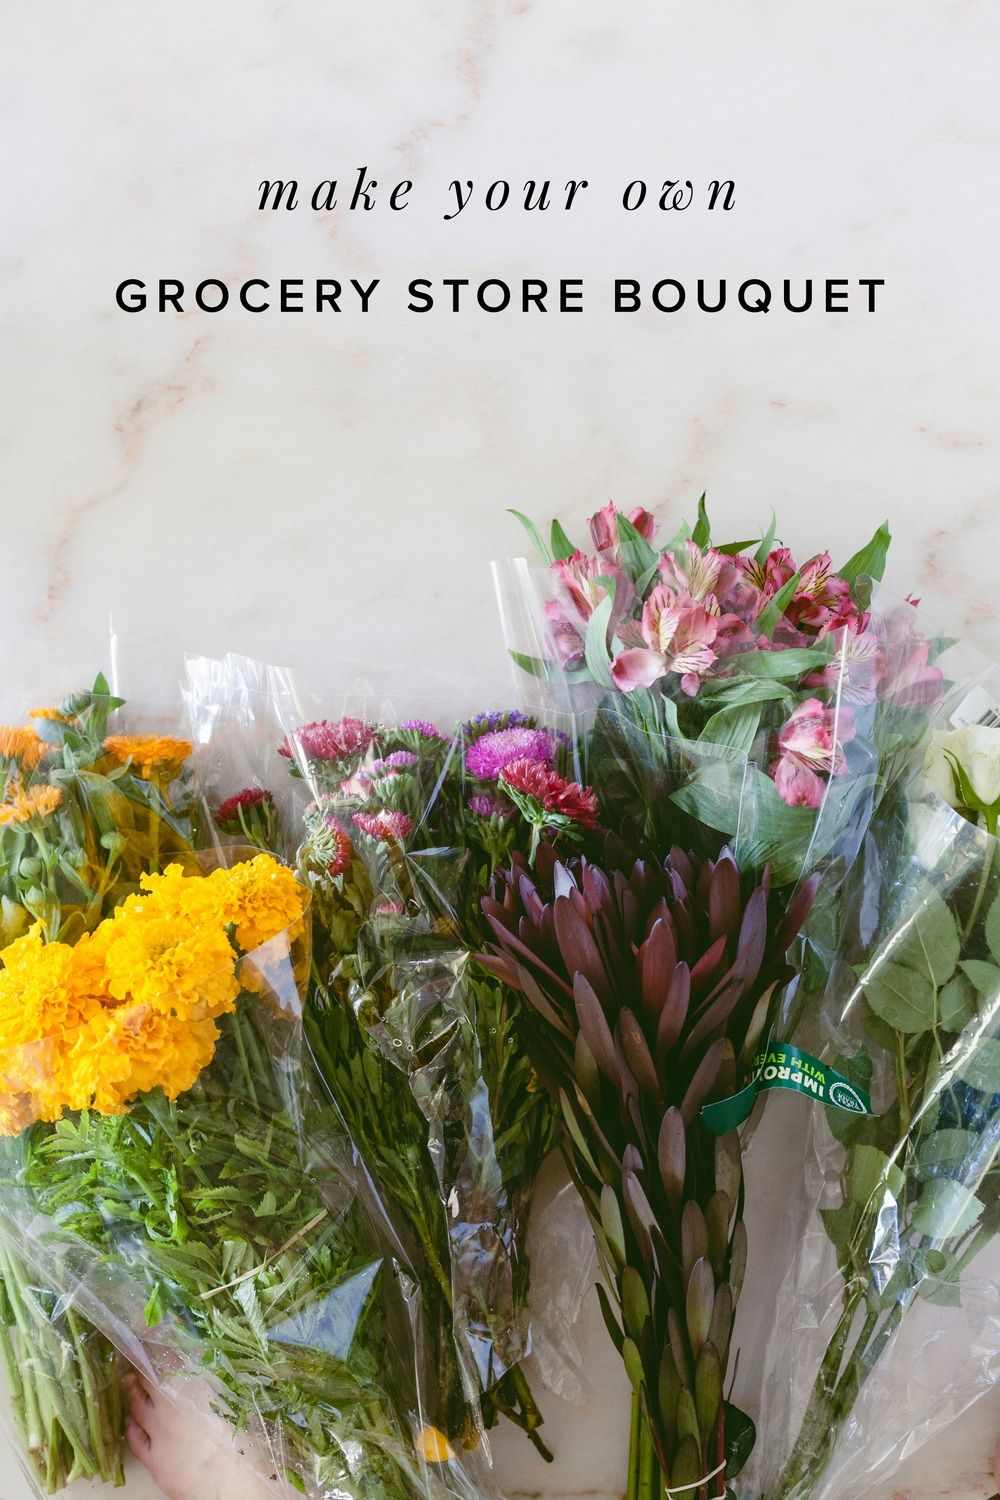 Diy grocery store bouquet flower arrangements pinterest aster transform and elevate grocery store flowers into a wild and woodsy bouquet with orchids asters izmirmasajfo